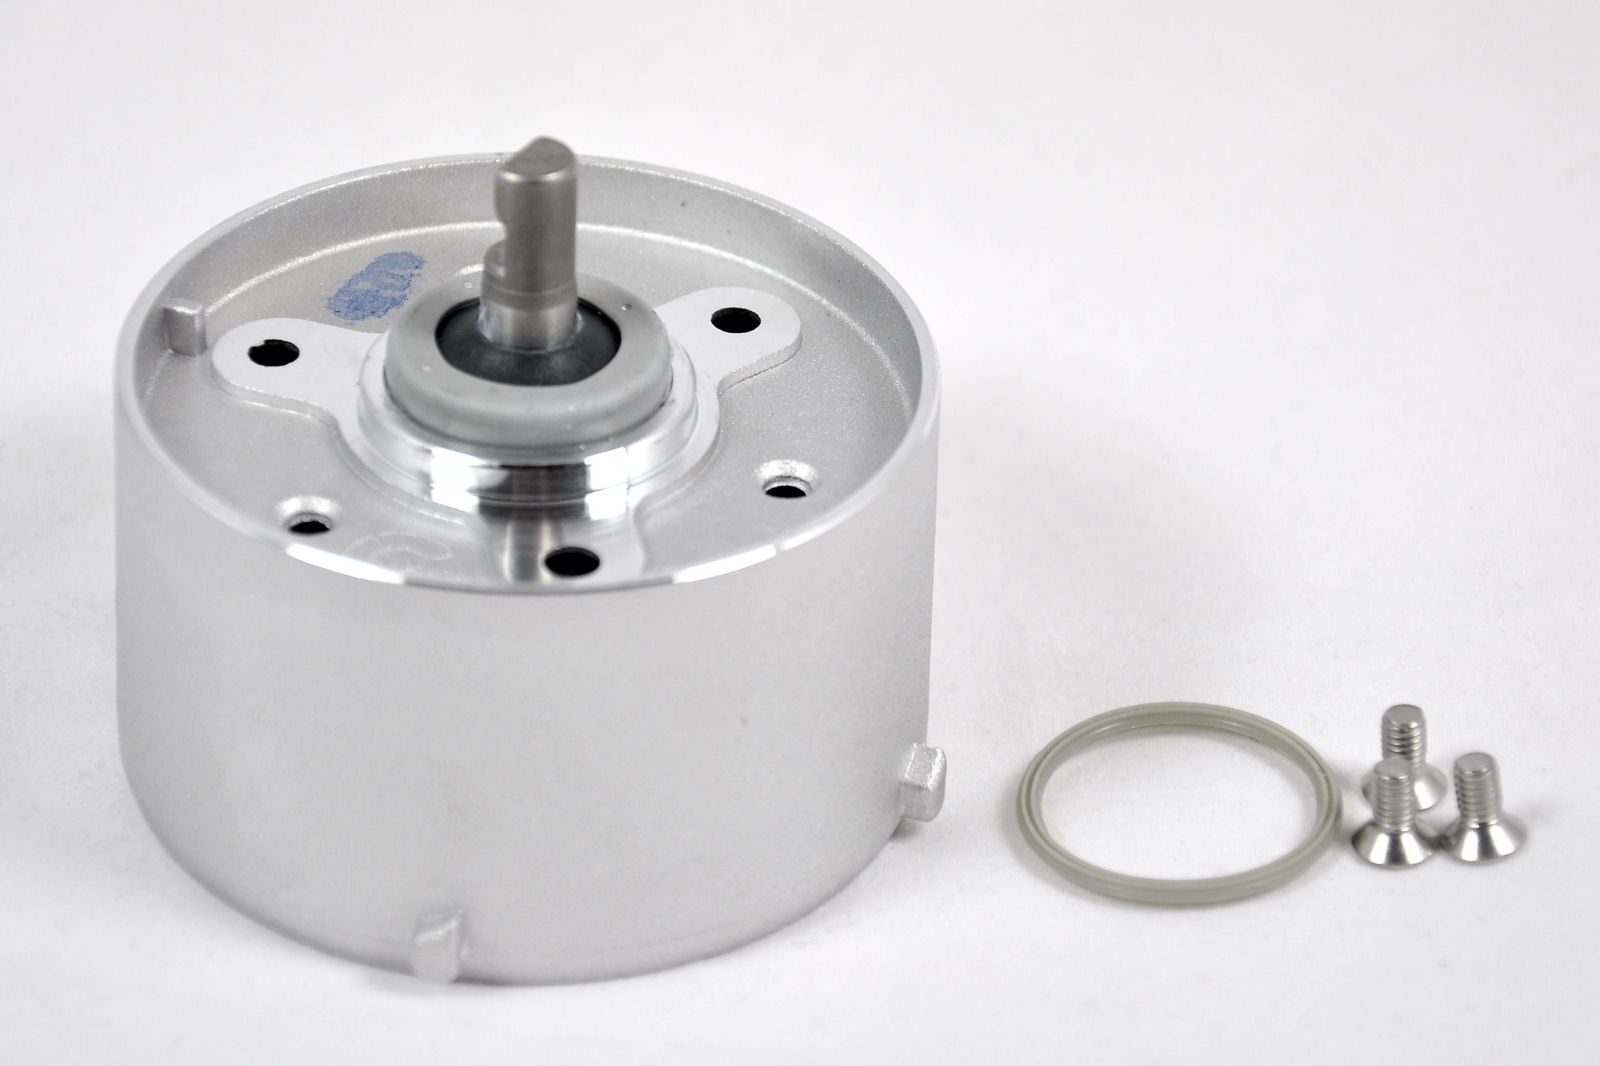 Mounting shaft for Panasonic Breadmaker  [PAN.BRE.ADA29A115]